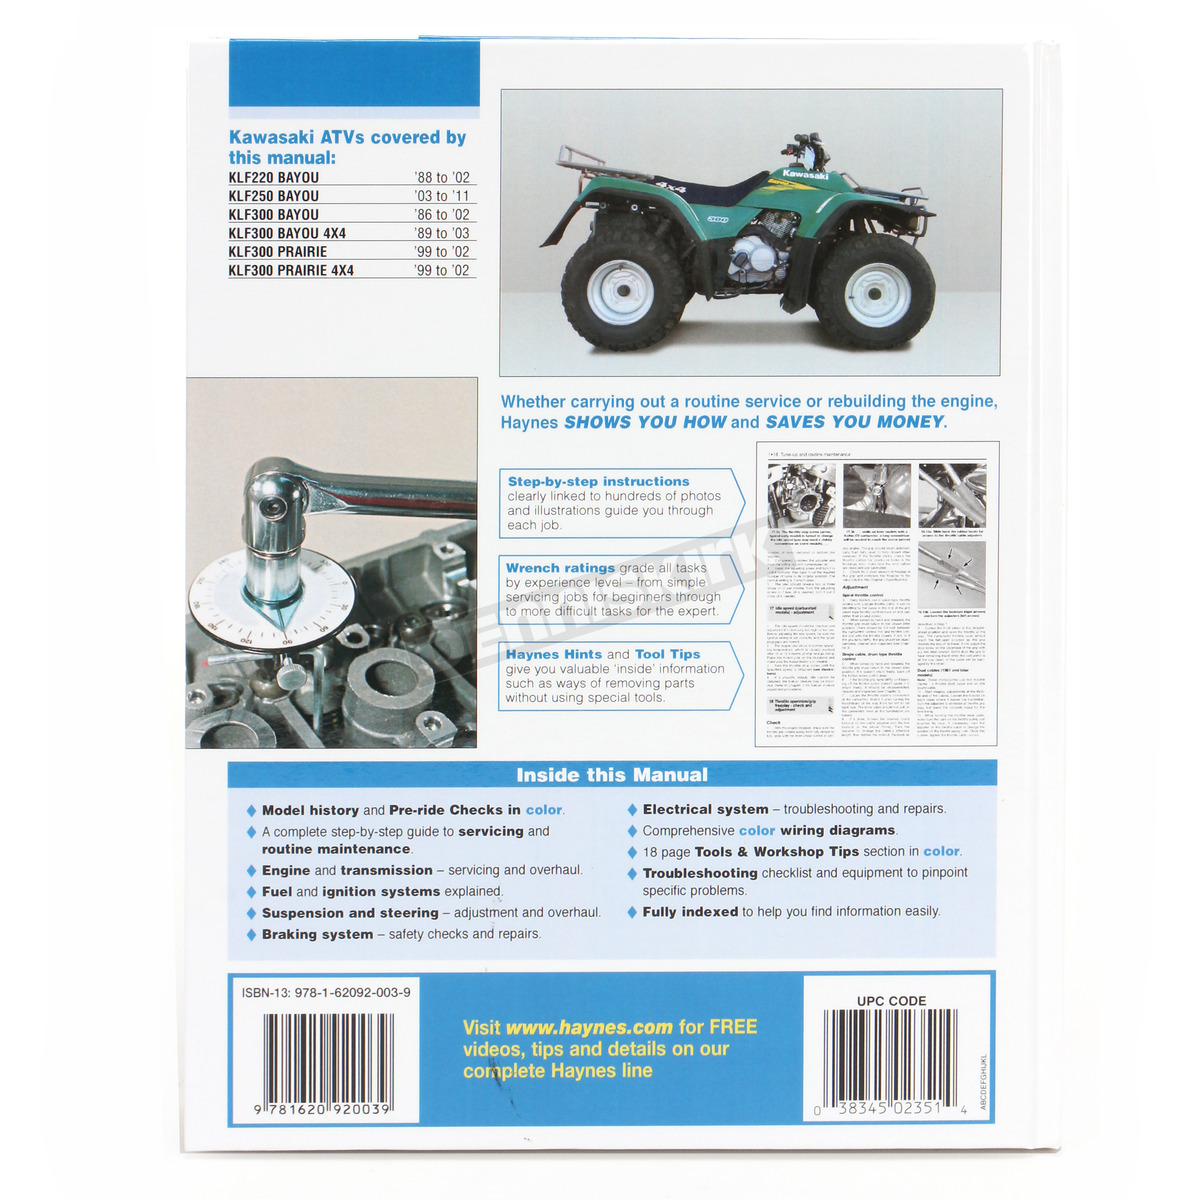 ... Kawasaki Repair Manual - 2351